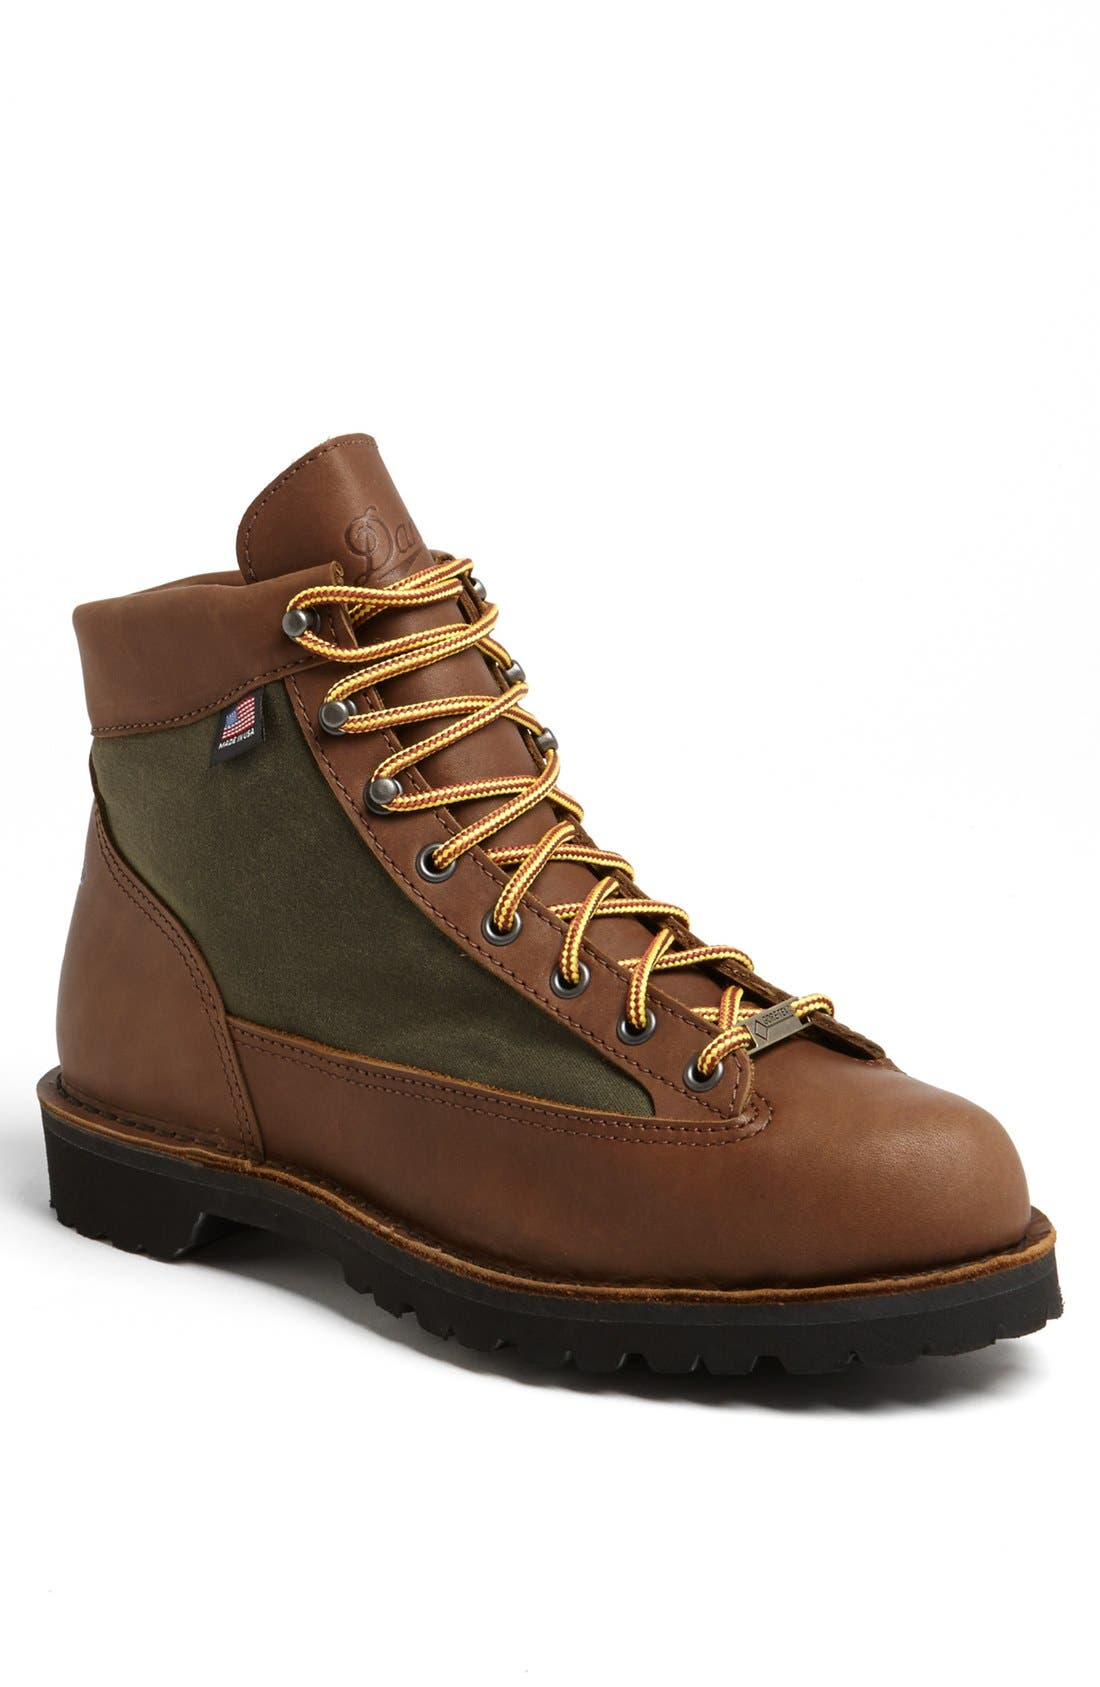 'Light Timber' Round Toe Boot, Main, color, 200